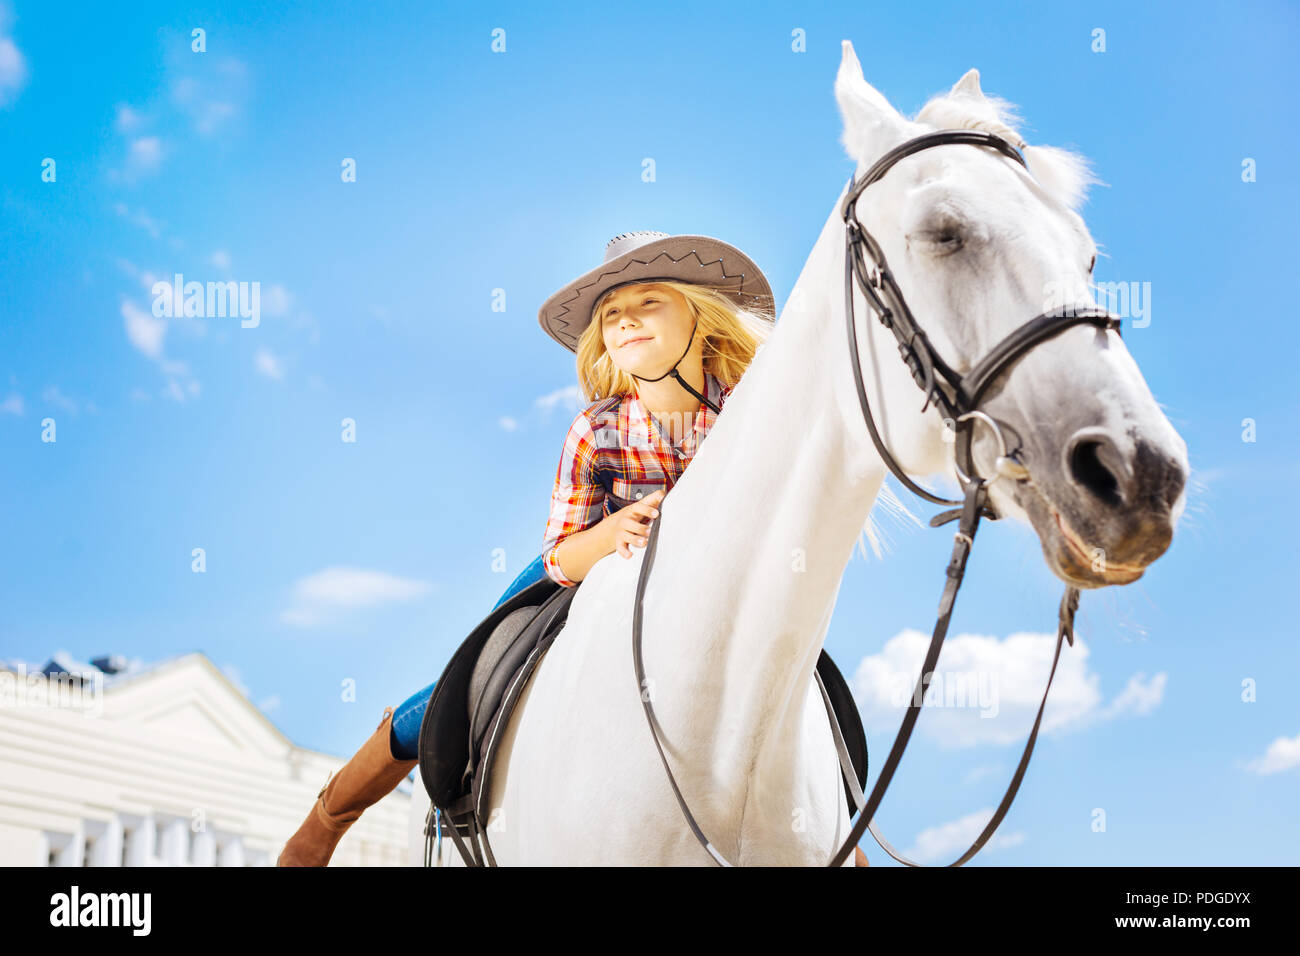 Blonde-haired cowboy girl leaning on her racing horse - Stock Image